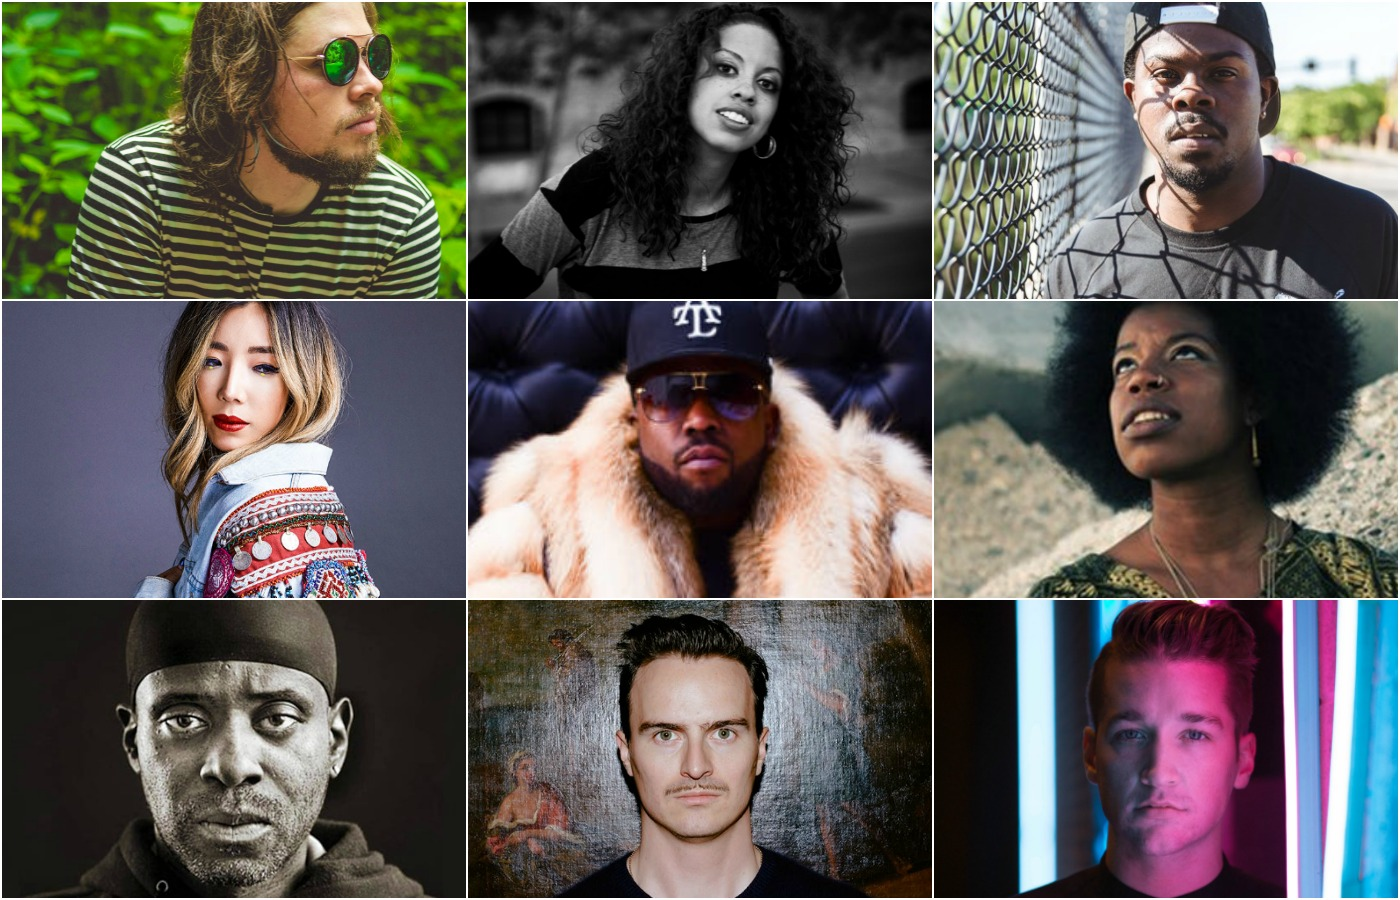 Parker Louis, K.Raydio, DJ Manny, TOKiMONSTA, Big Boi, Georgia Anne Muldrow, Model 500, Cid Rim, Louis Futon